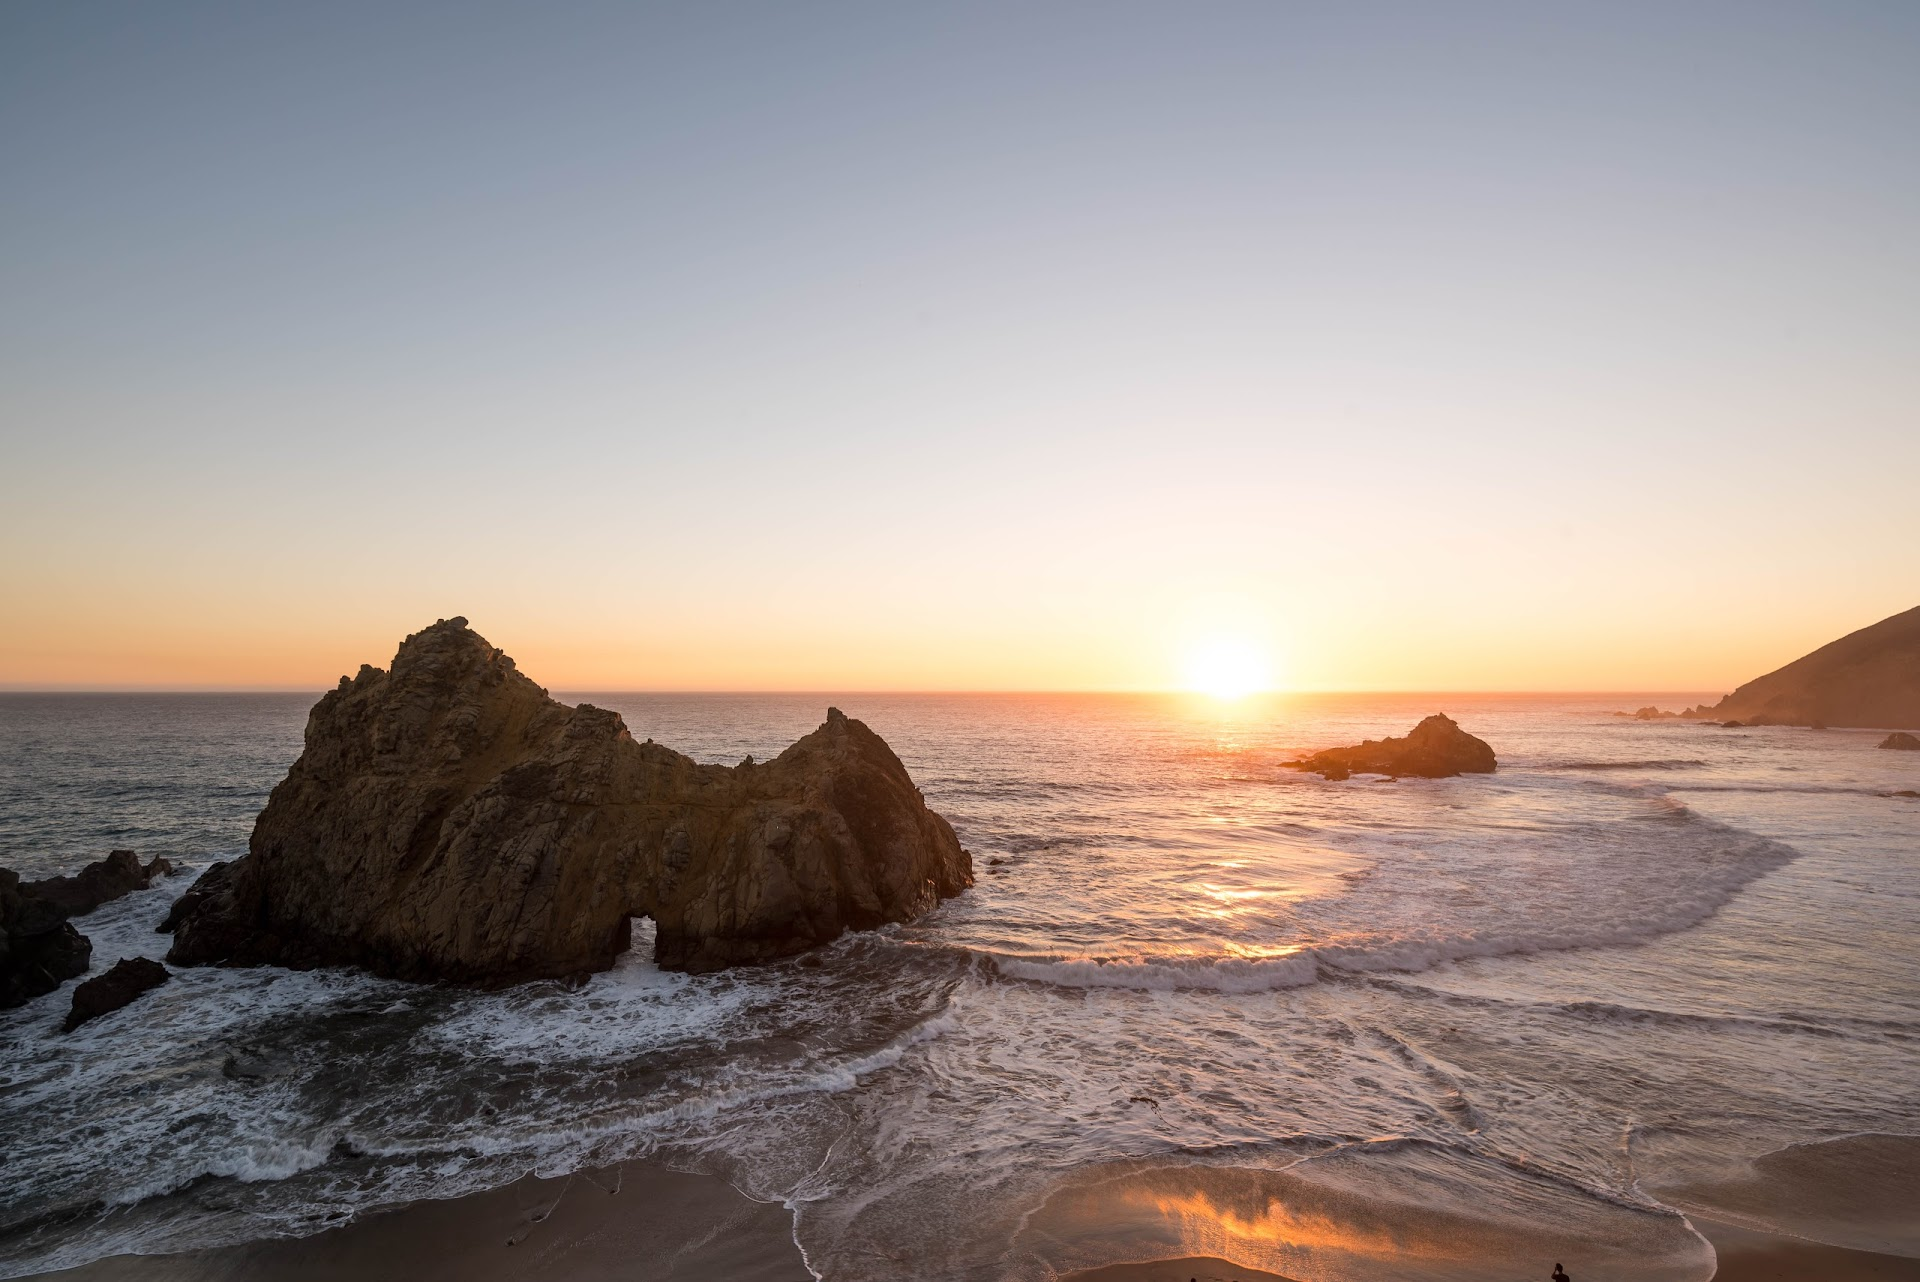 pfeiffer beach, sunset, big sur, monterey county, see monterey, photography, california travel blogger, central coast, travel tips, itinerary, weekend road trip, san francisco bay area blogger, big sur beach, landscape photography, where to get the best photo at pfeiffer beach